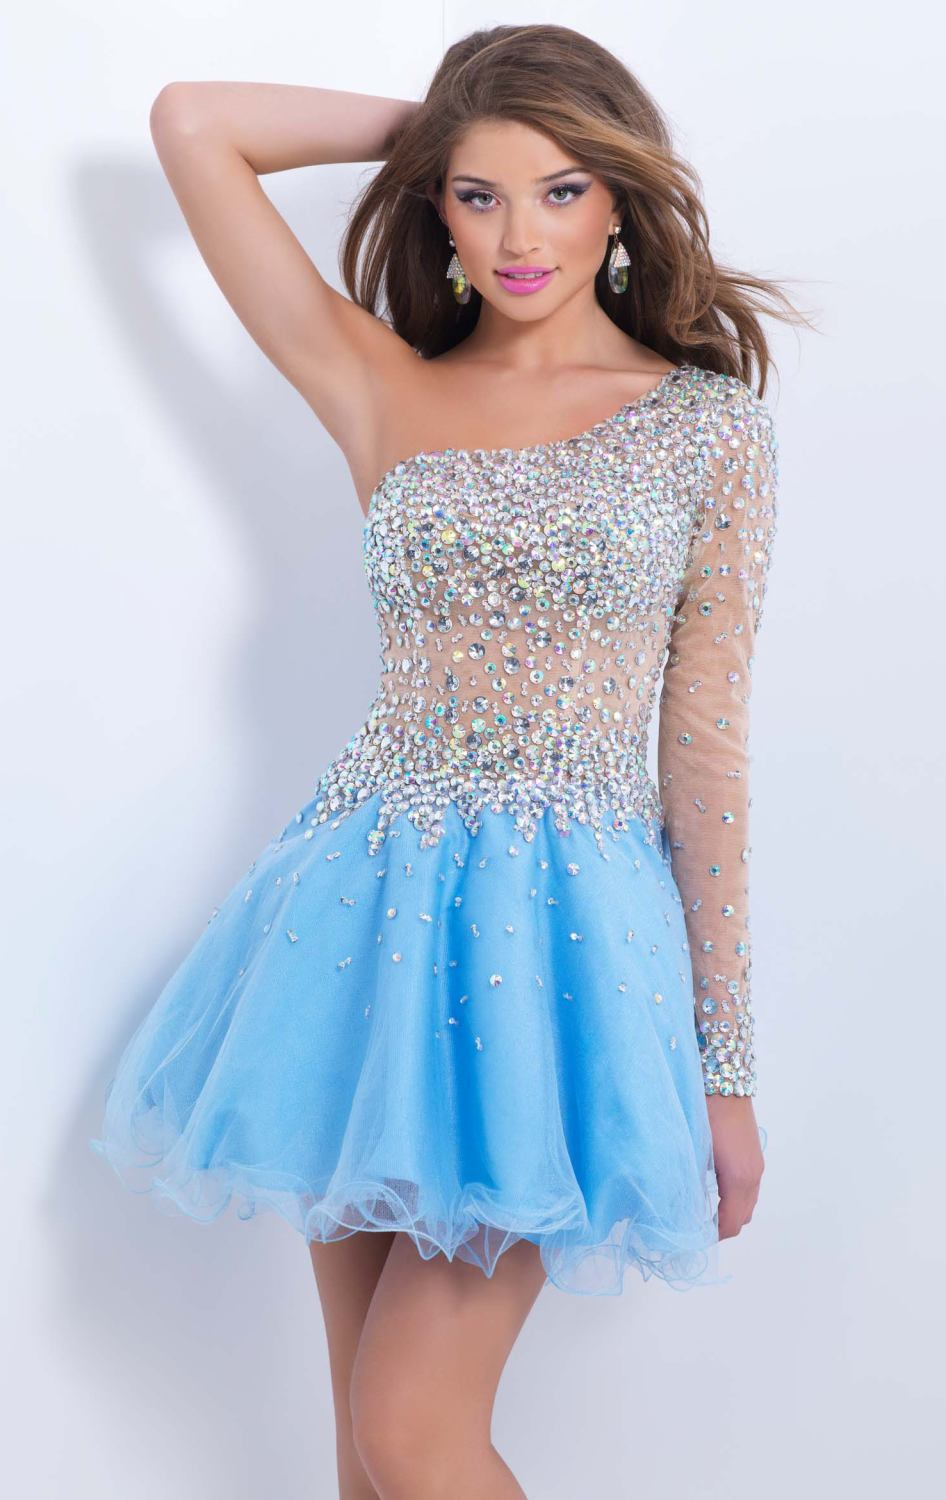 8256da89f77 New 2015 Short Homecoming Dress Knee Length Light Blue One Shoulder  Crystals Nude Long Sleeves A Line Graduation Party Dress L39